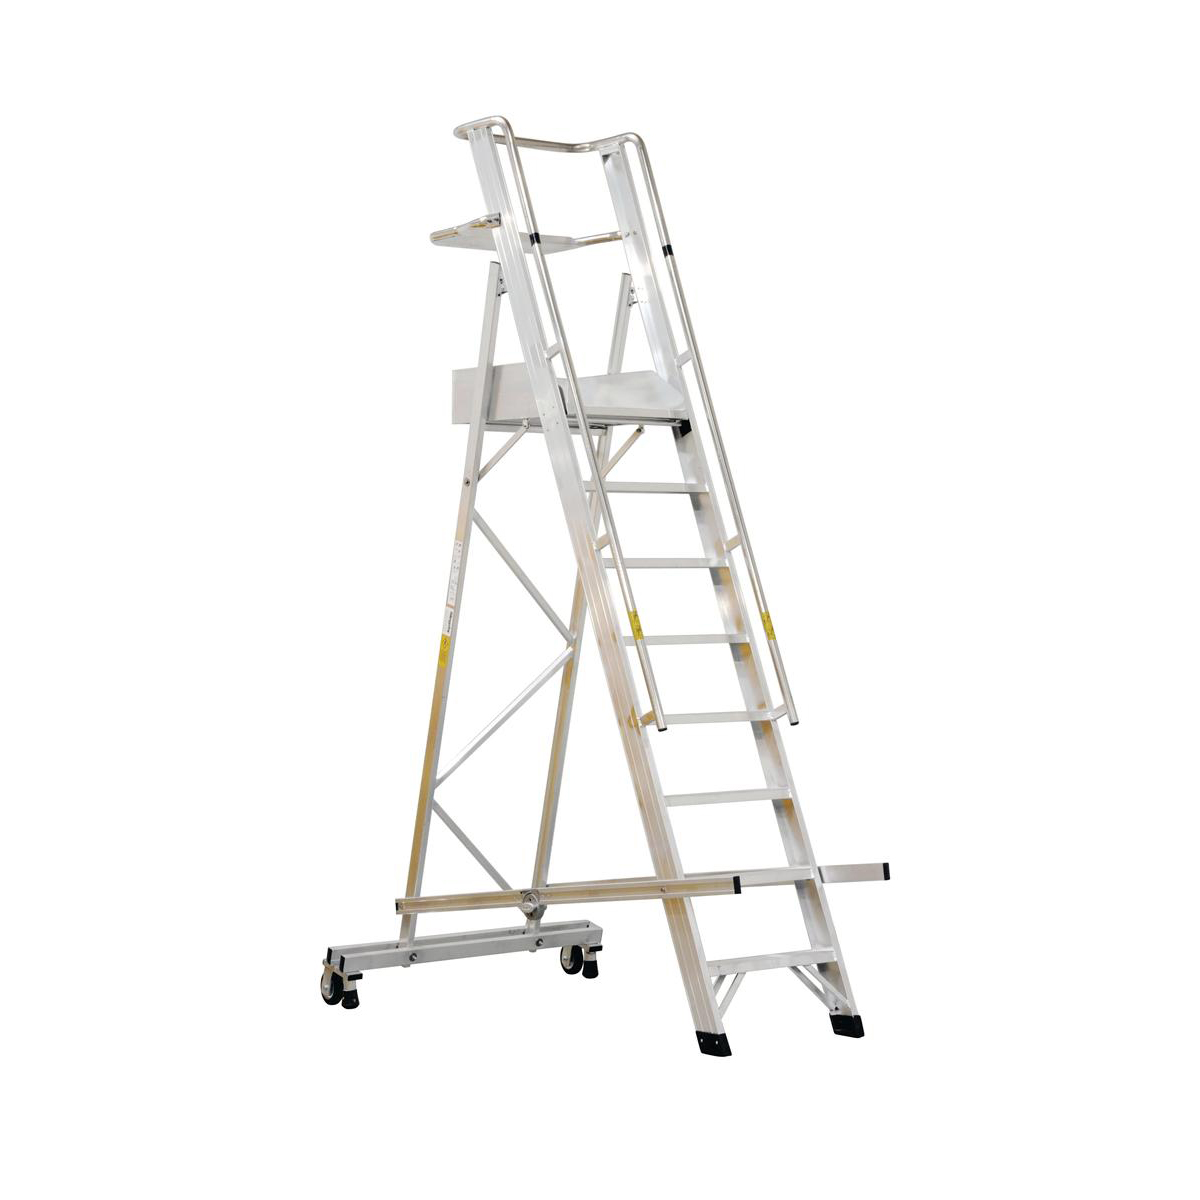 Platform step ladder Warehouse Ladder Mobile Folding 10 Tread Aluminium